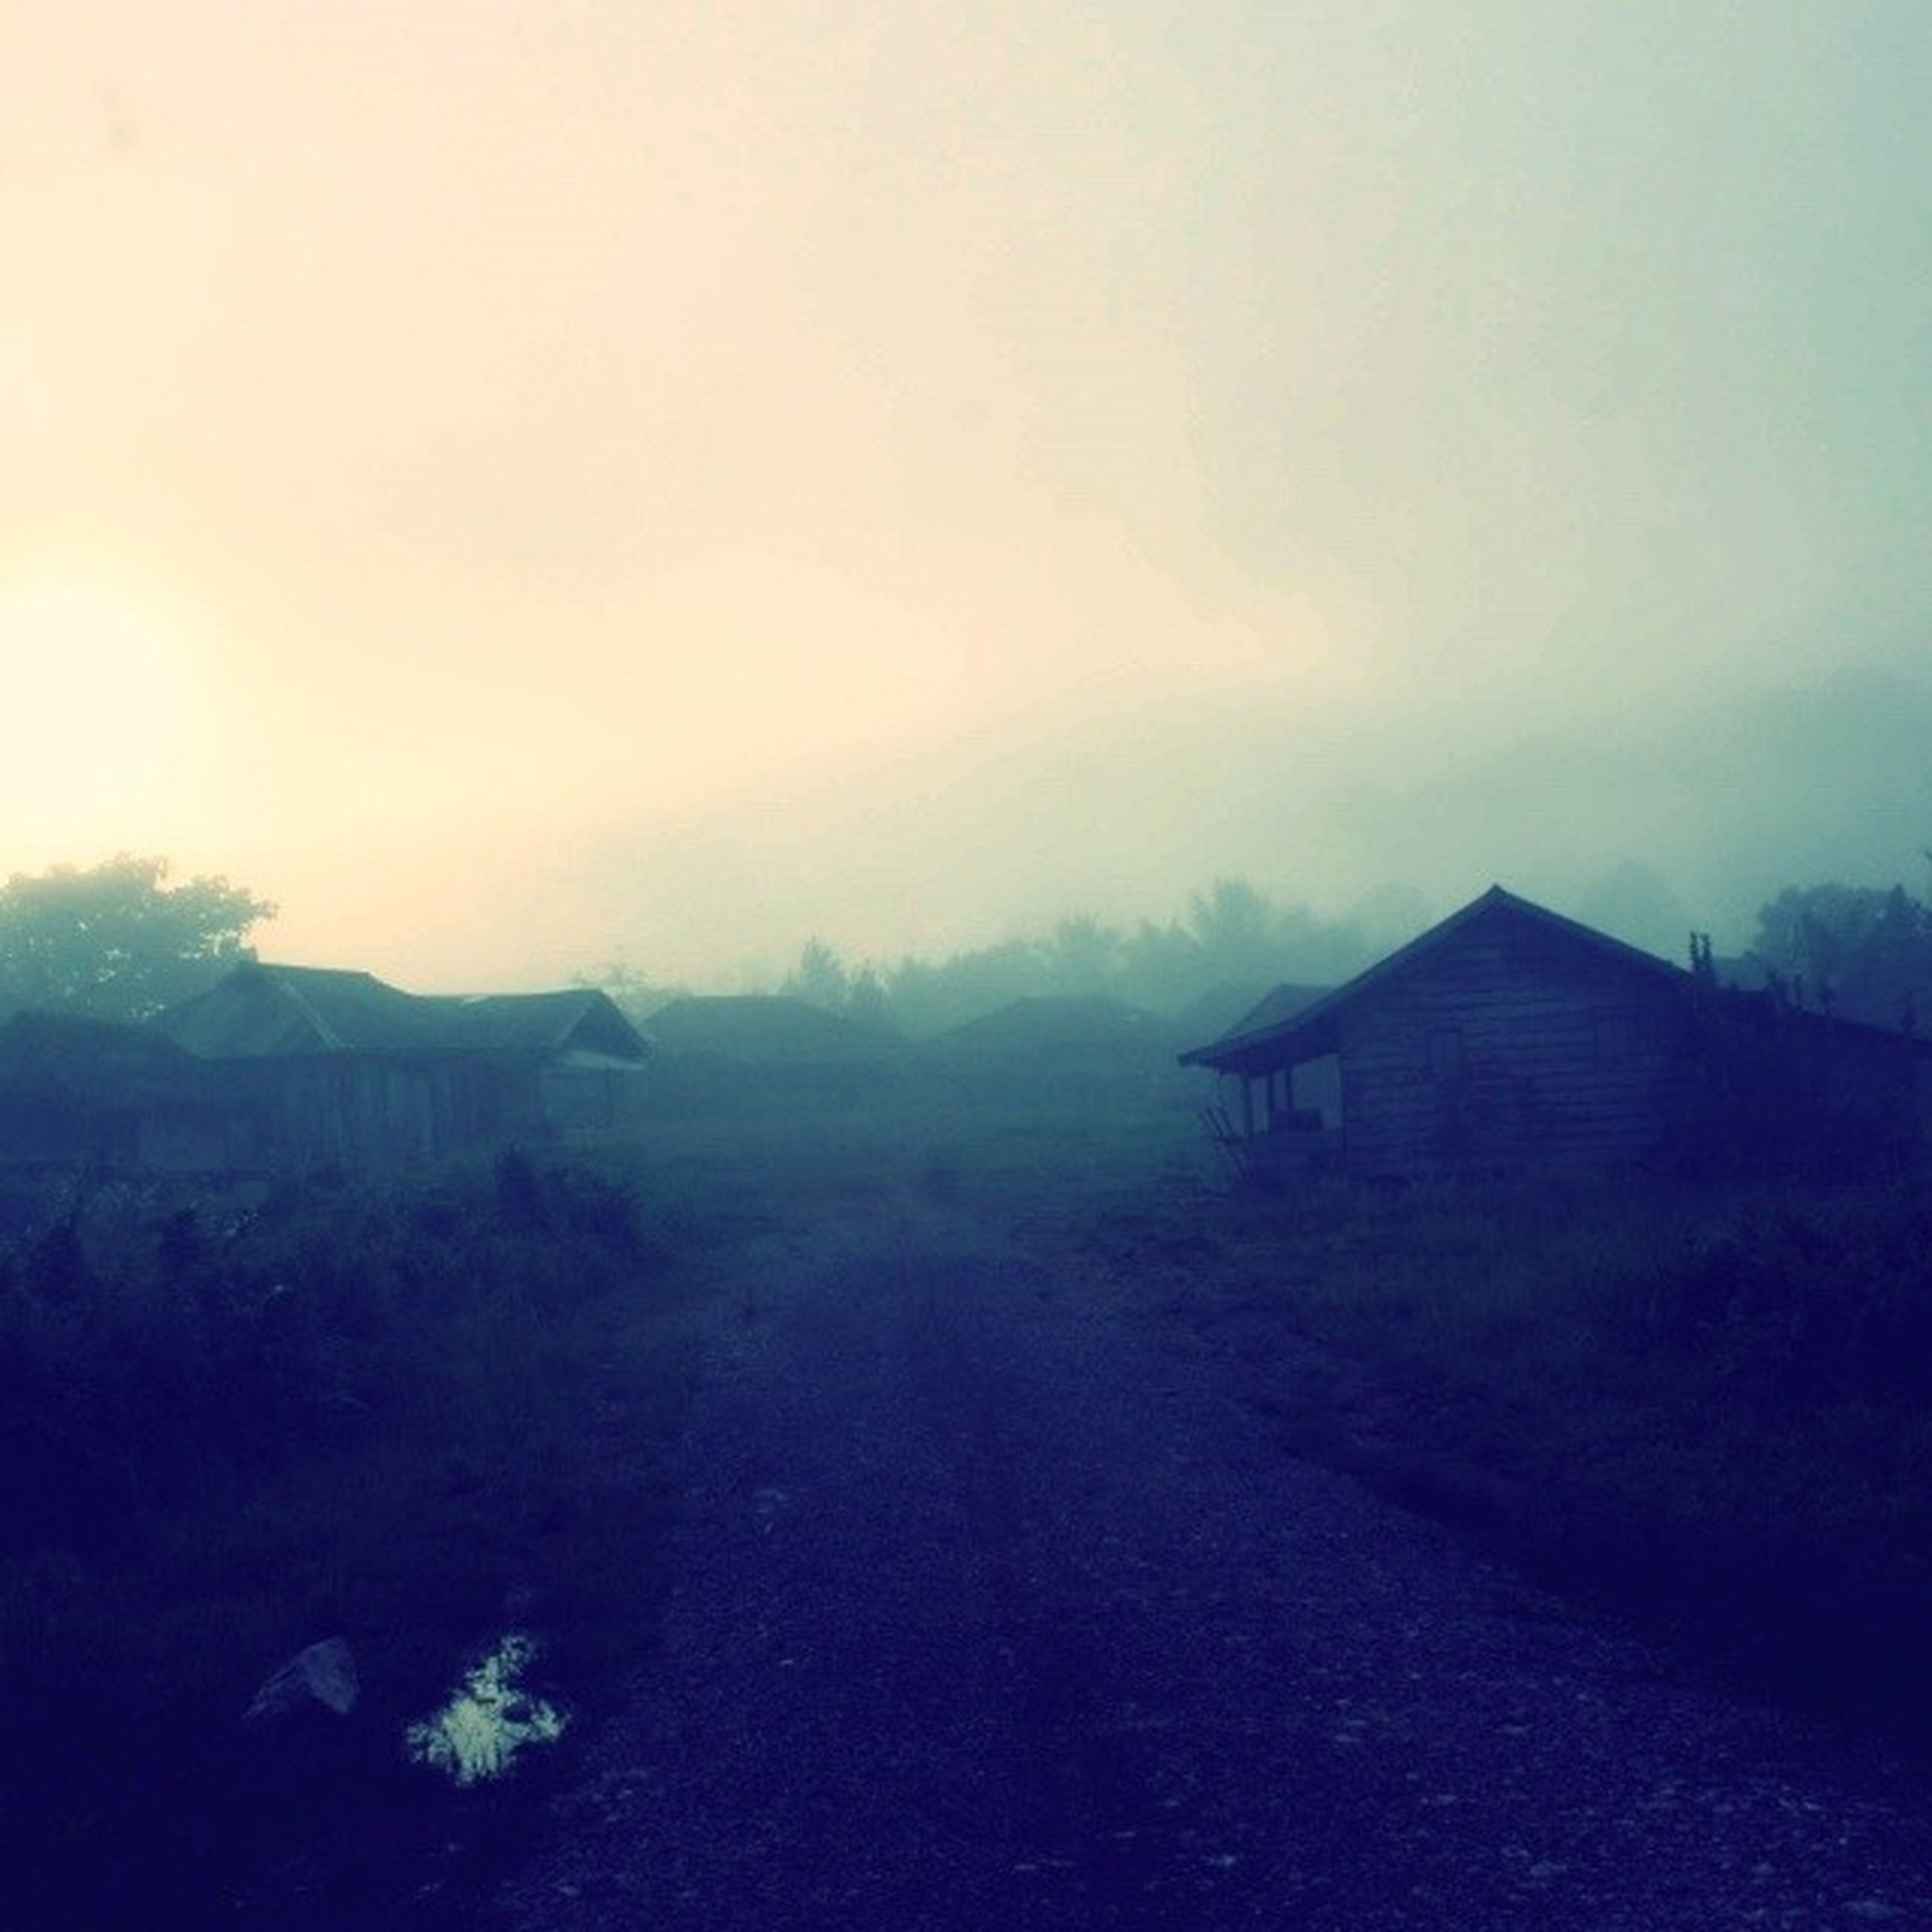 building exterior, built structure, fog, architecture, sky, tranquility, landscape, tranquil scene, house, weather, foggy, scenics, beauty in nature, nature, copy space, mountain, sunset, field, outdoors, no people